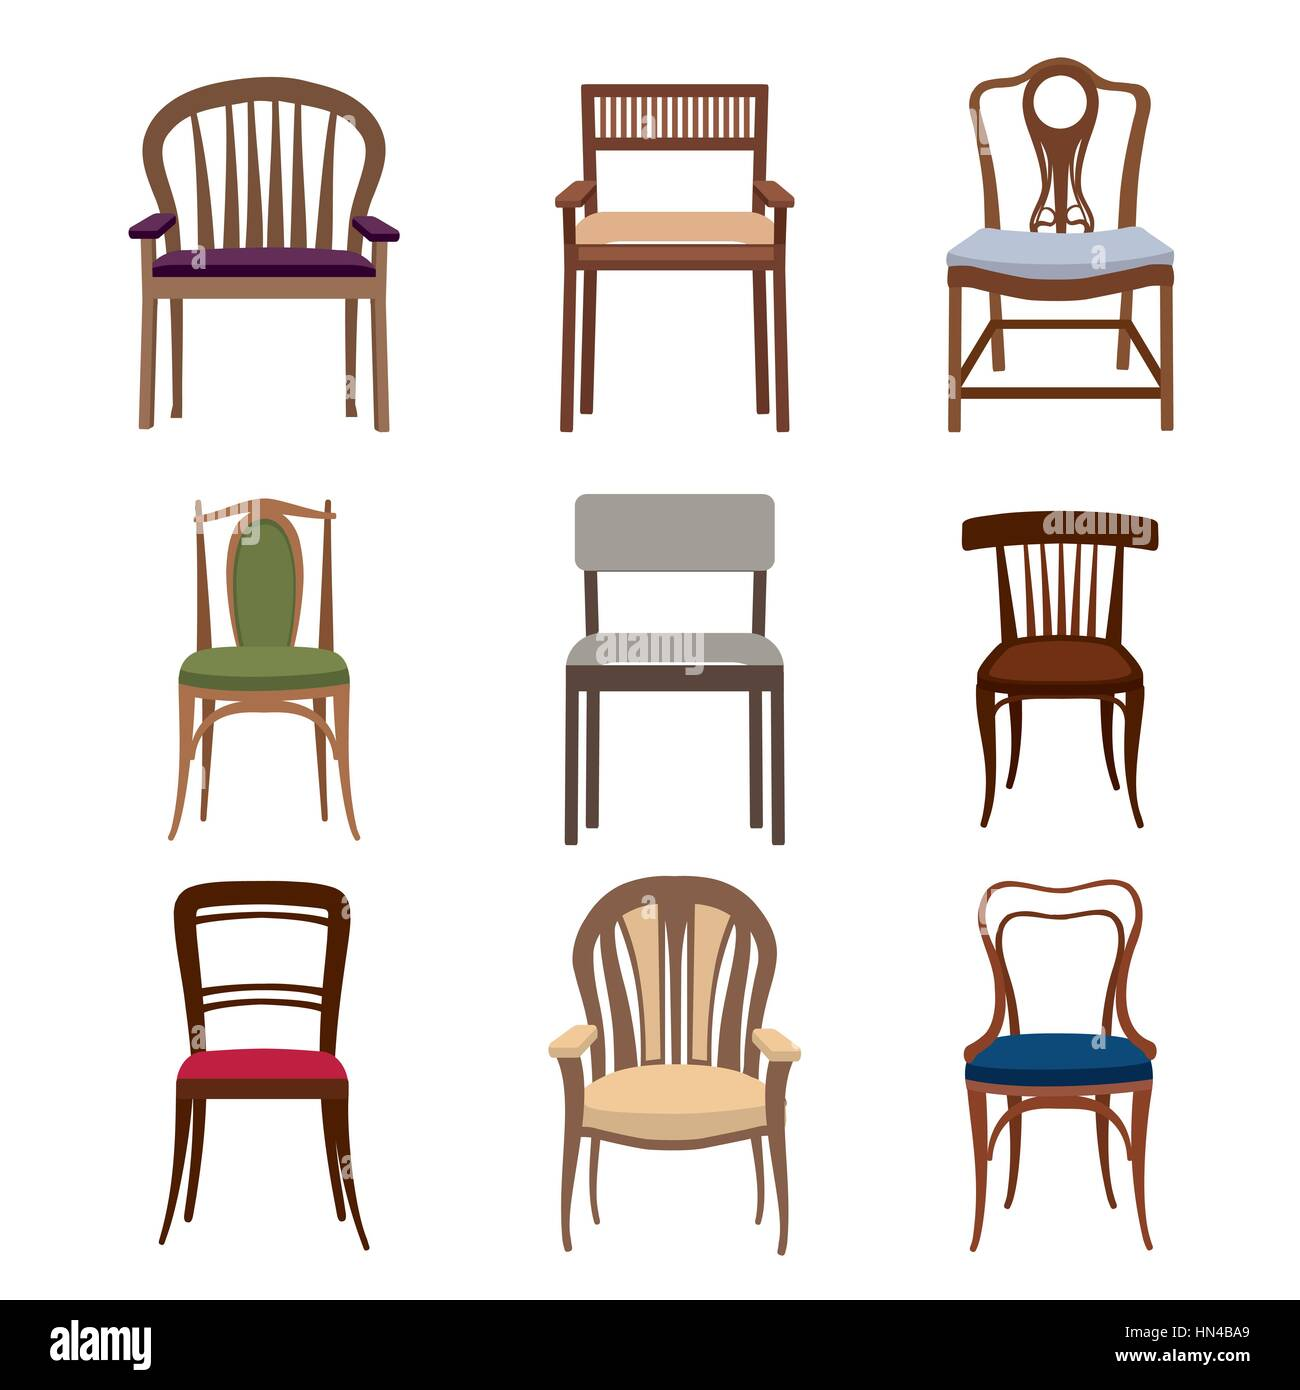 Exceptionnel Chairs And Armchairs Icons Set. Furniture Collection Of Different Chairs In  Flat Style.